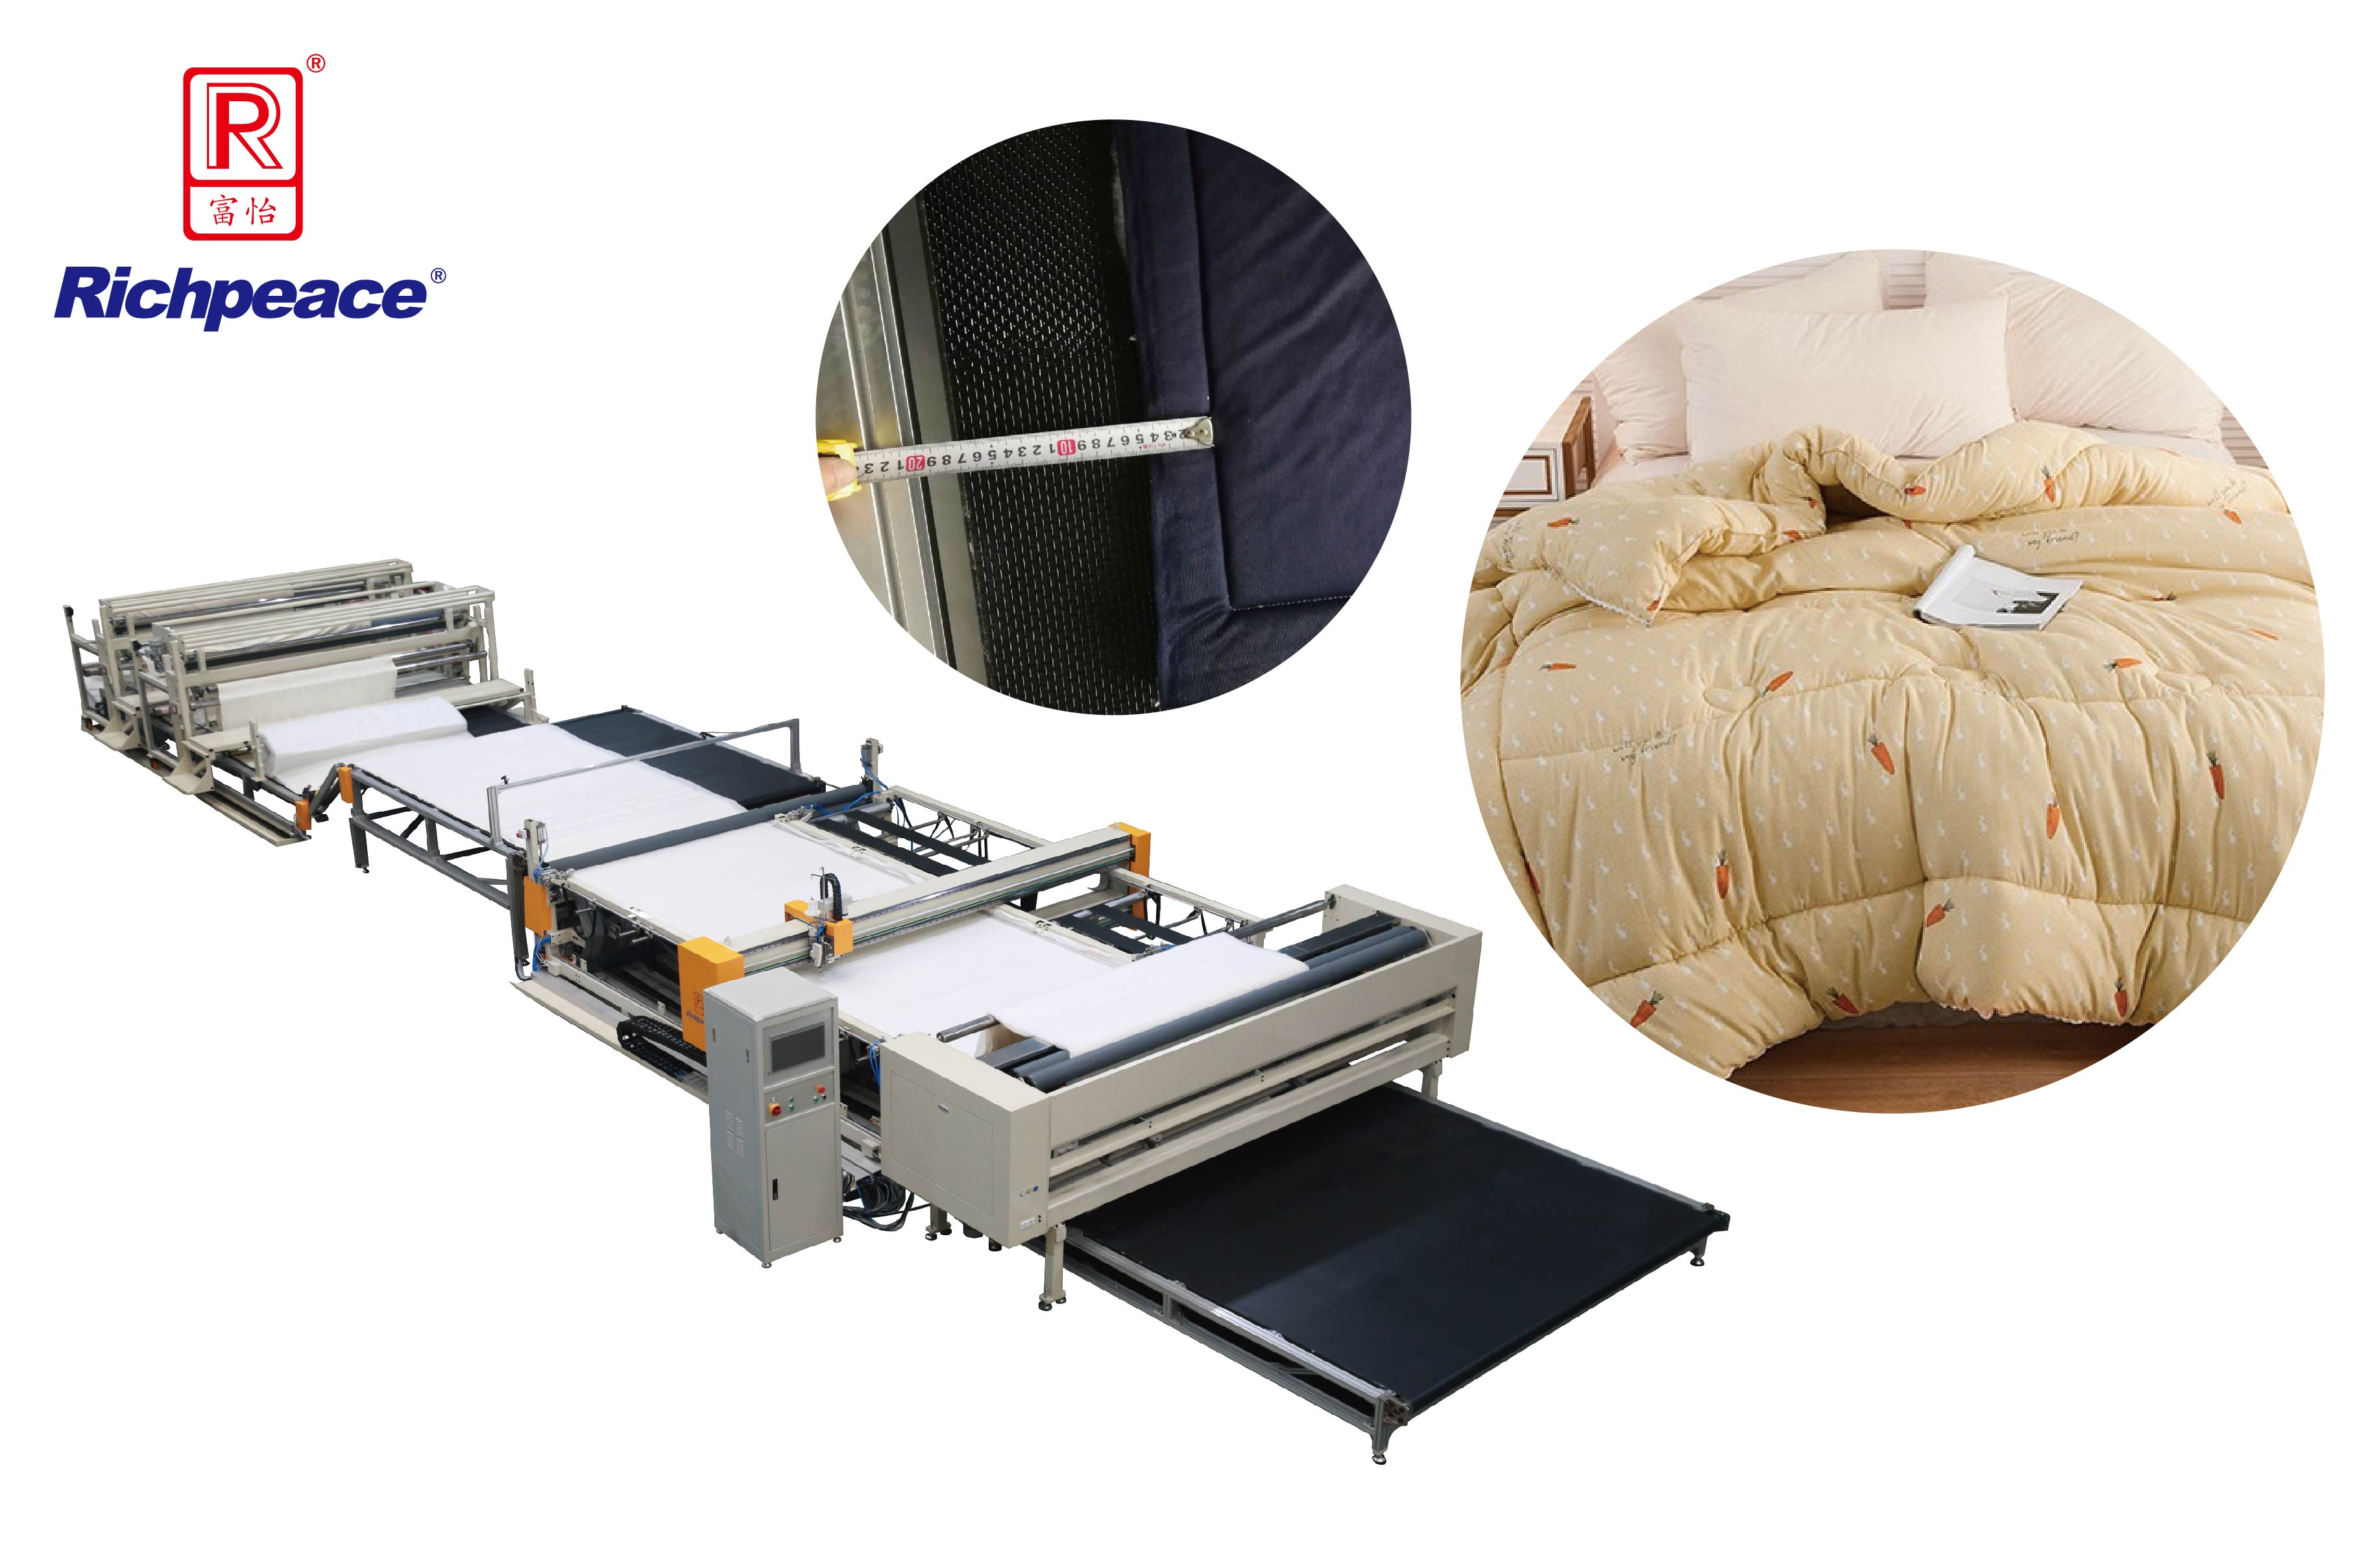 Richpeace Comforter 4-Side Inseam Sewing and Trimming Production Line